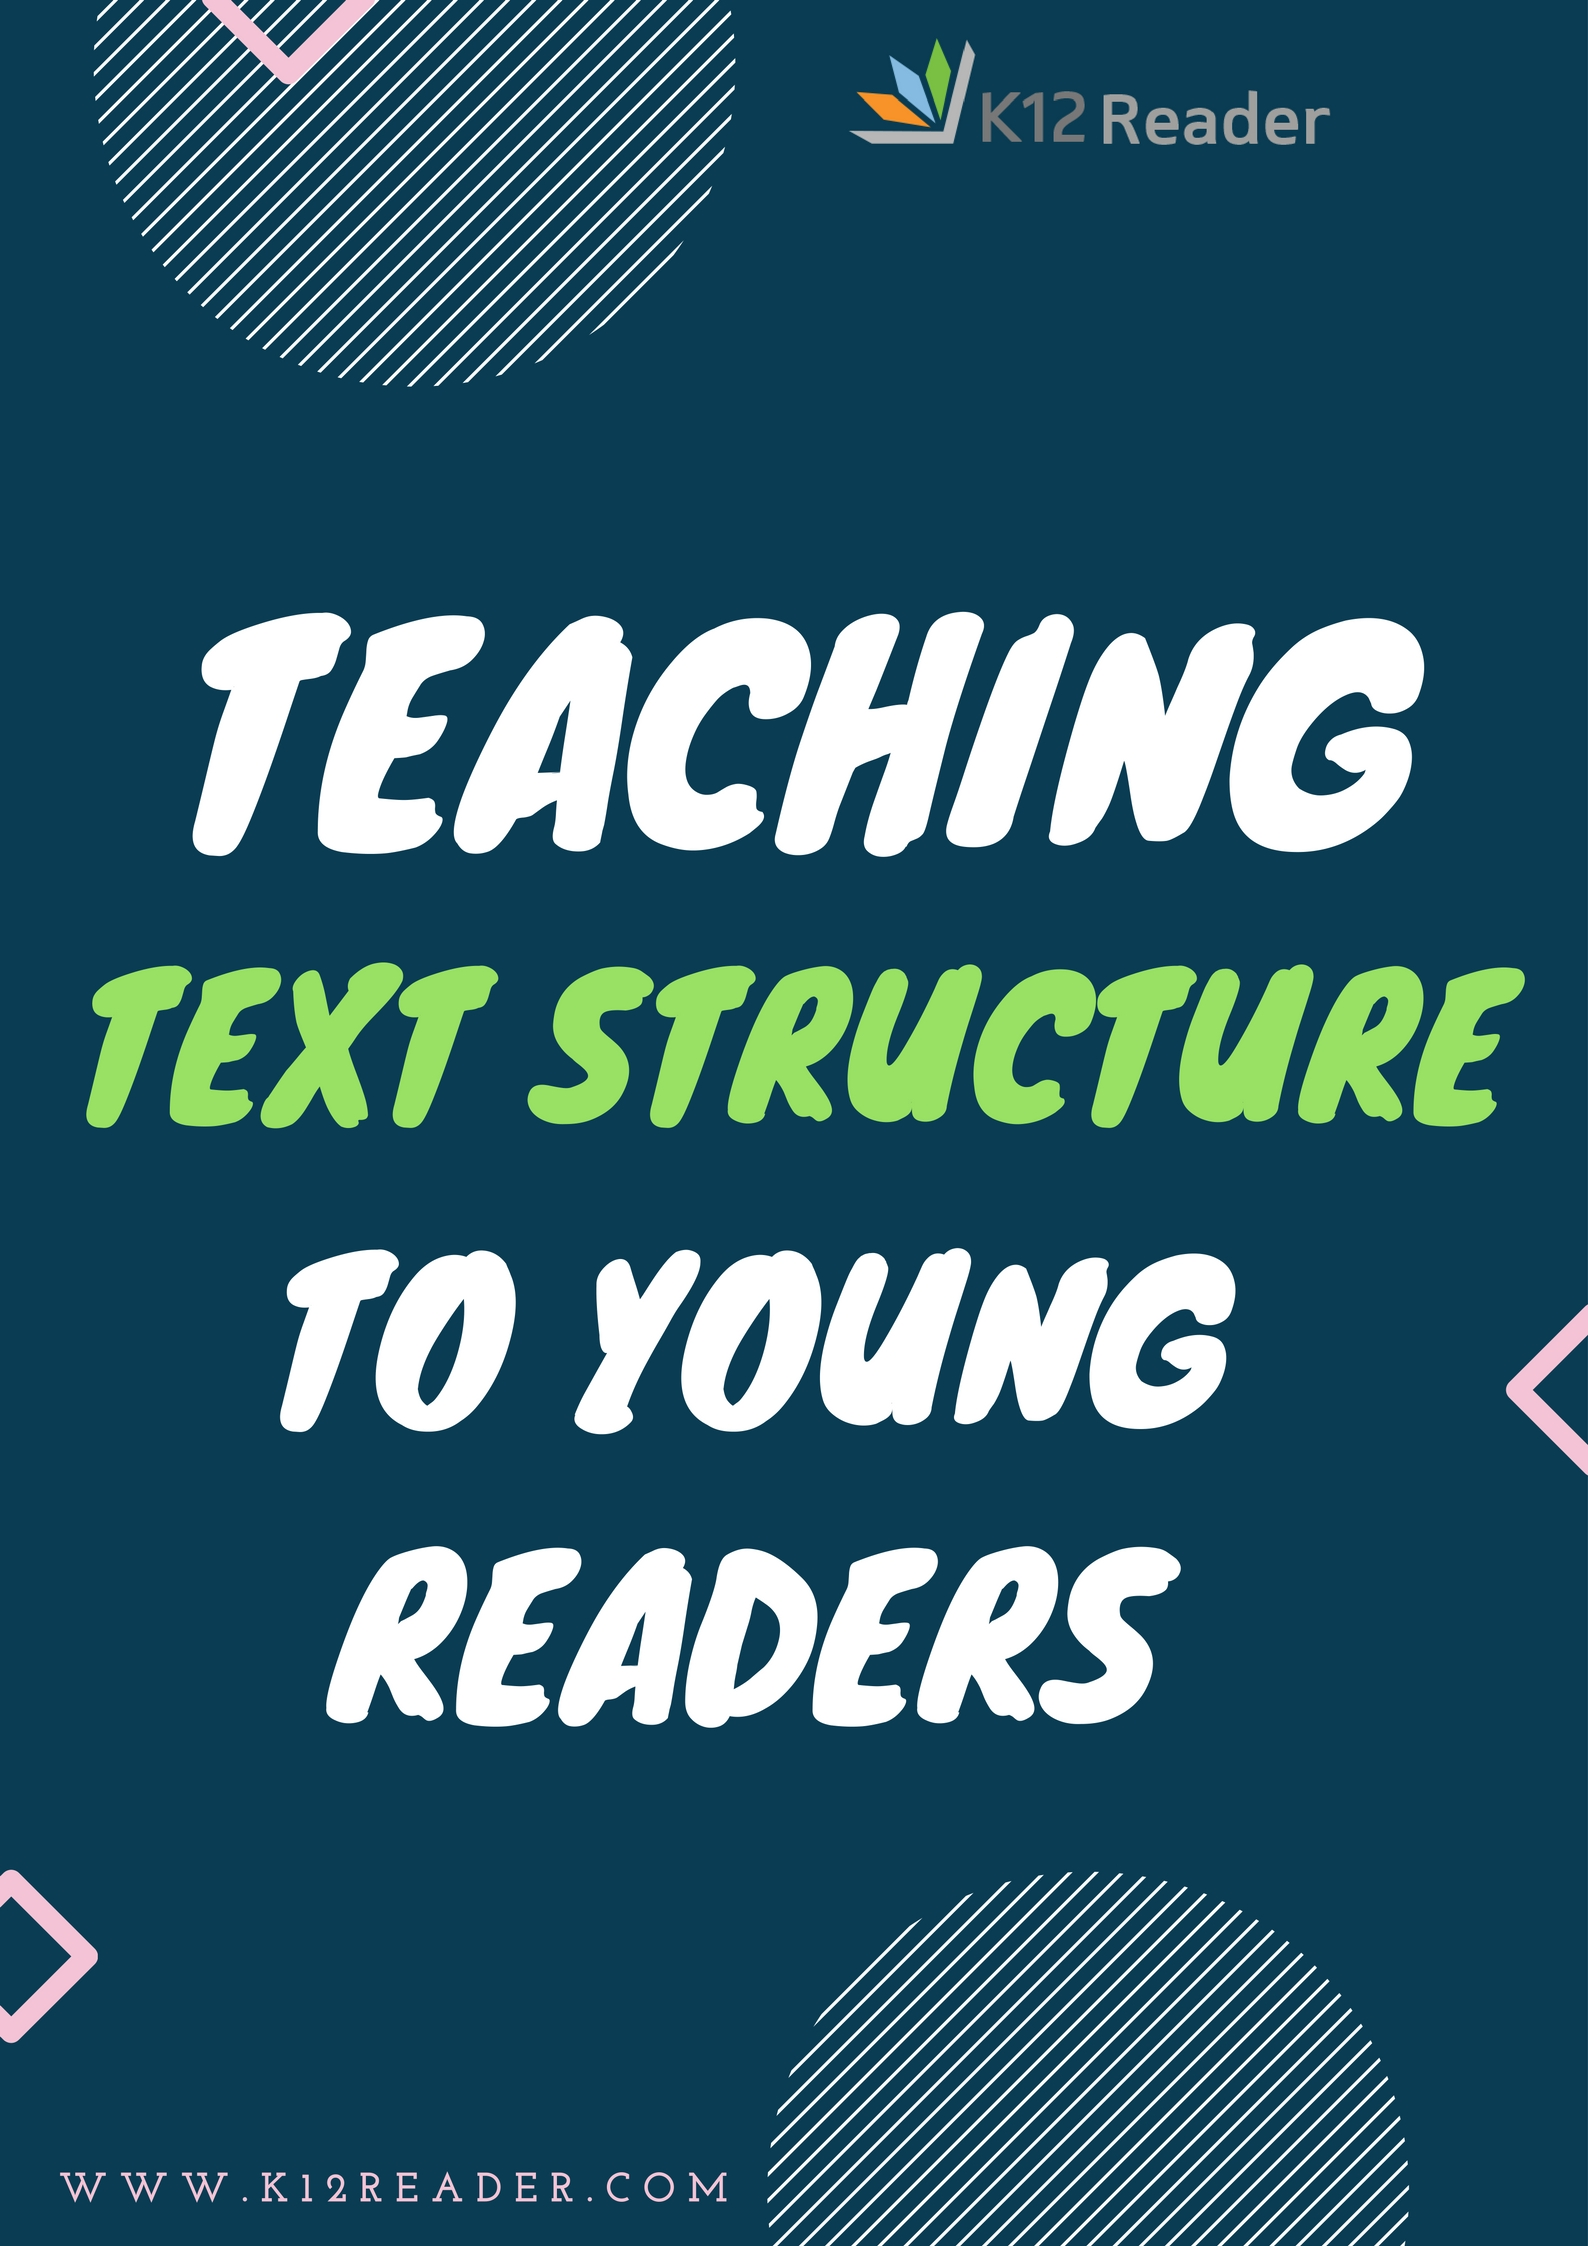 - What Is Text Structure? Teaching Text Structure To Young Readers